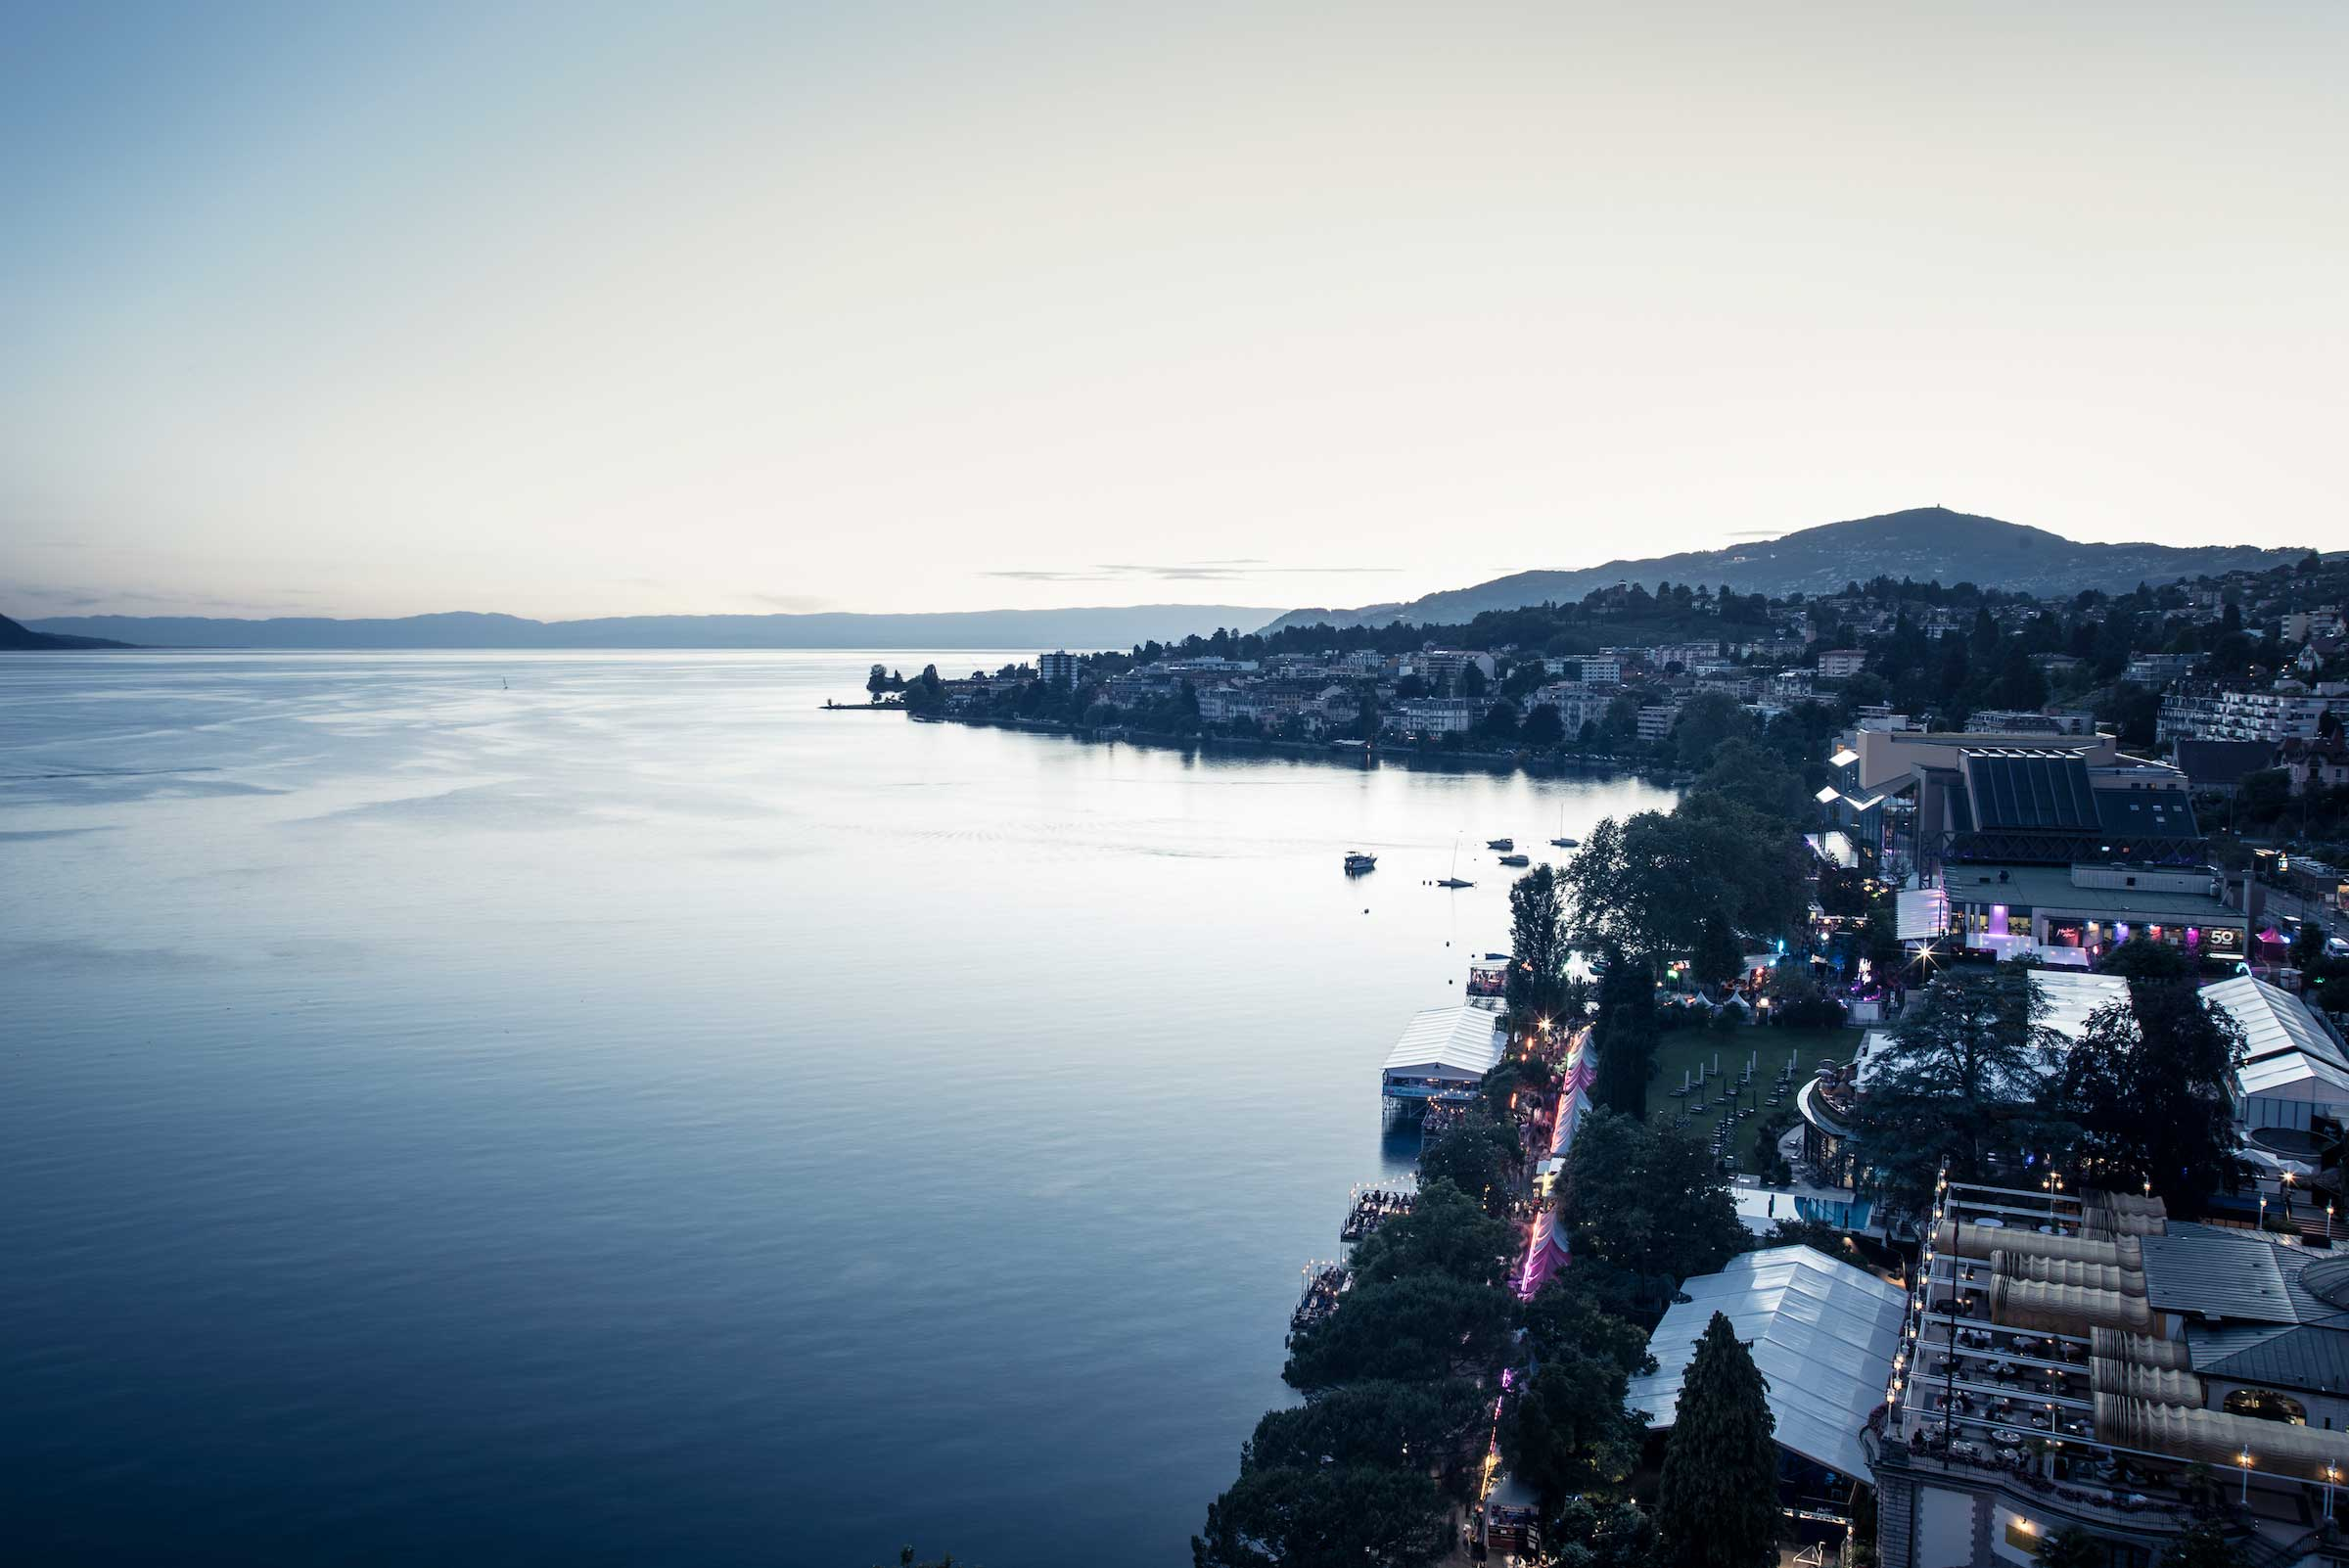 Aerial view of the promenade at dusk and a calm Lake Geneve